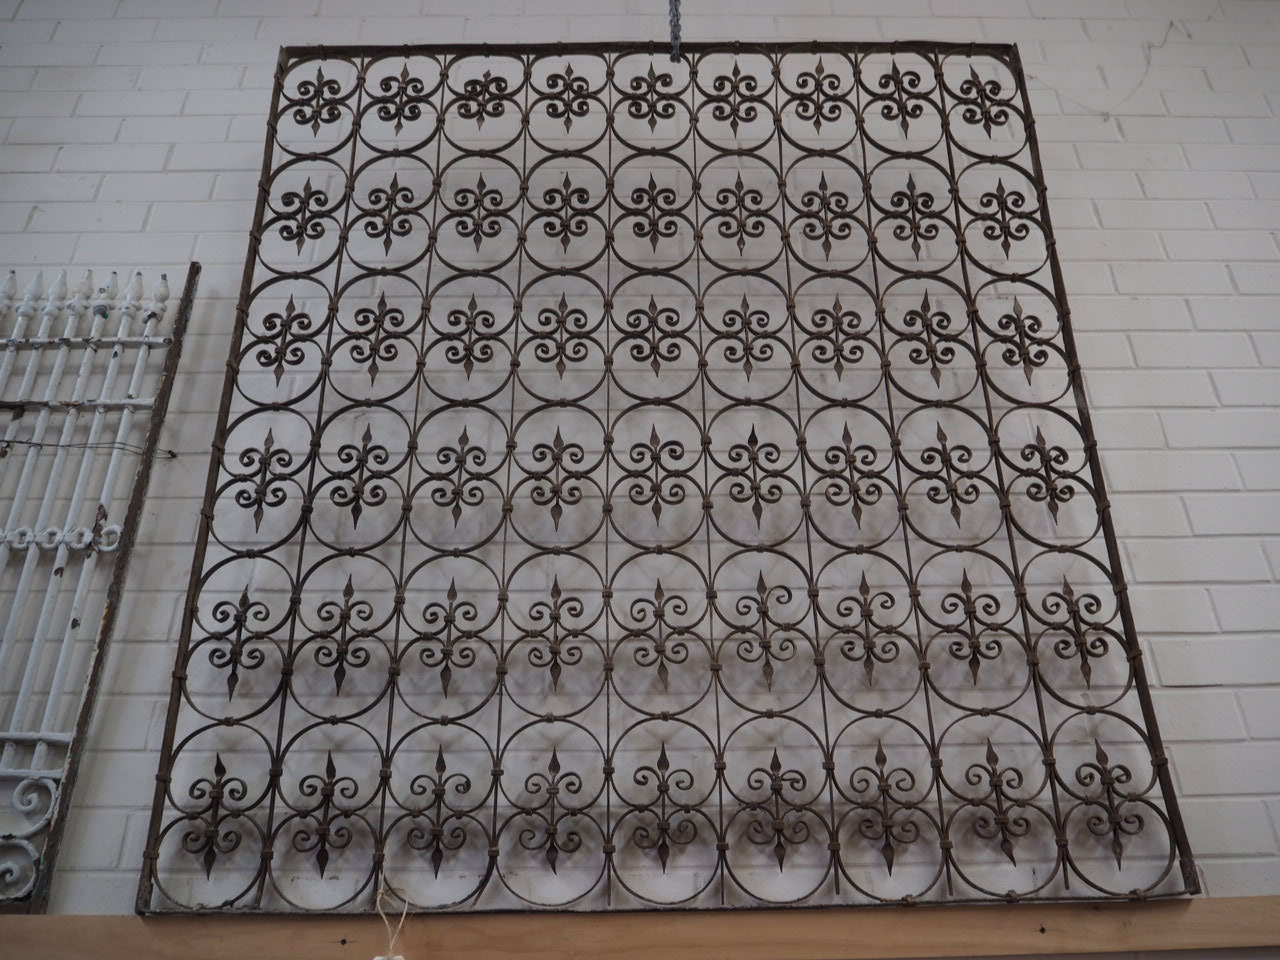 Antique Ottoman Wrought iron Grill from the 19th Century